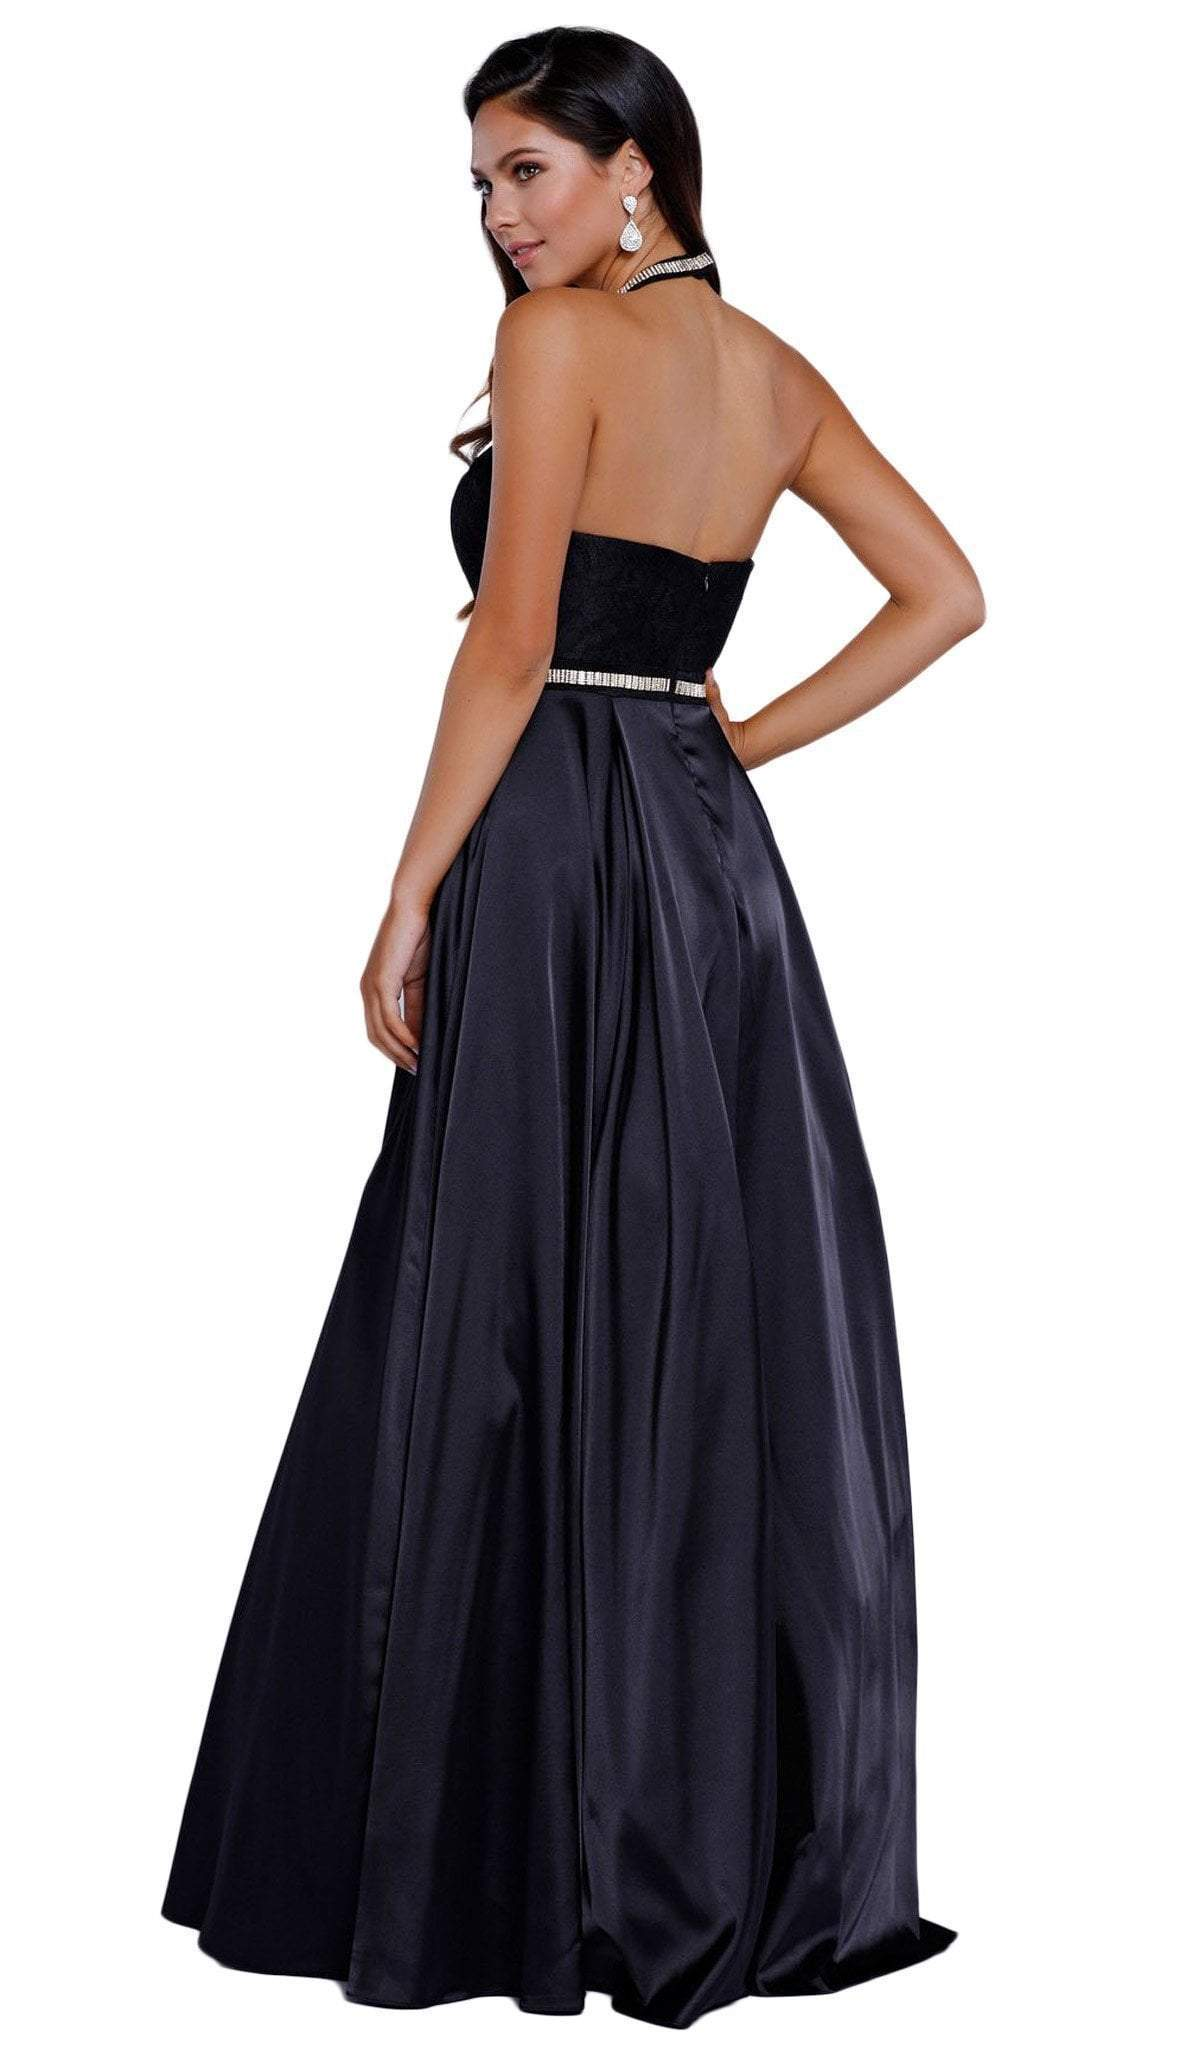 Nox Anabel - Embroidered Halter Neck A-Line Gown 8198SC